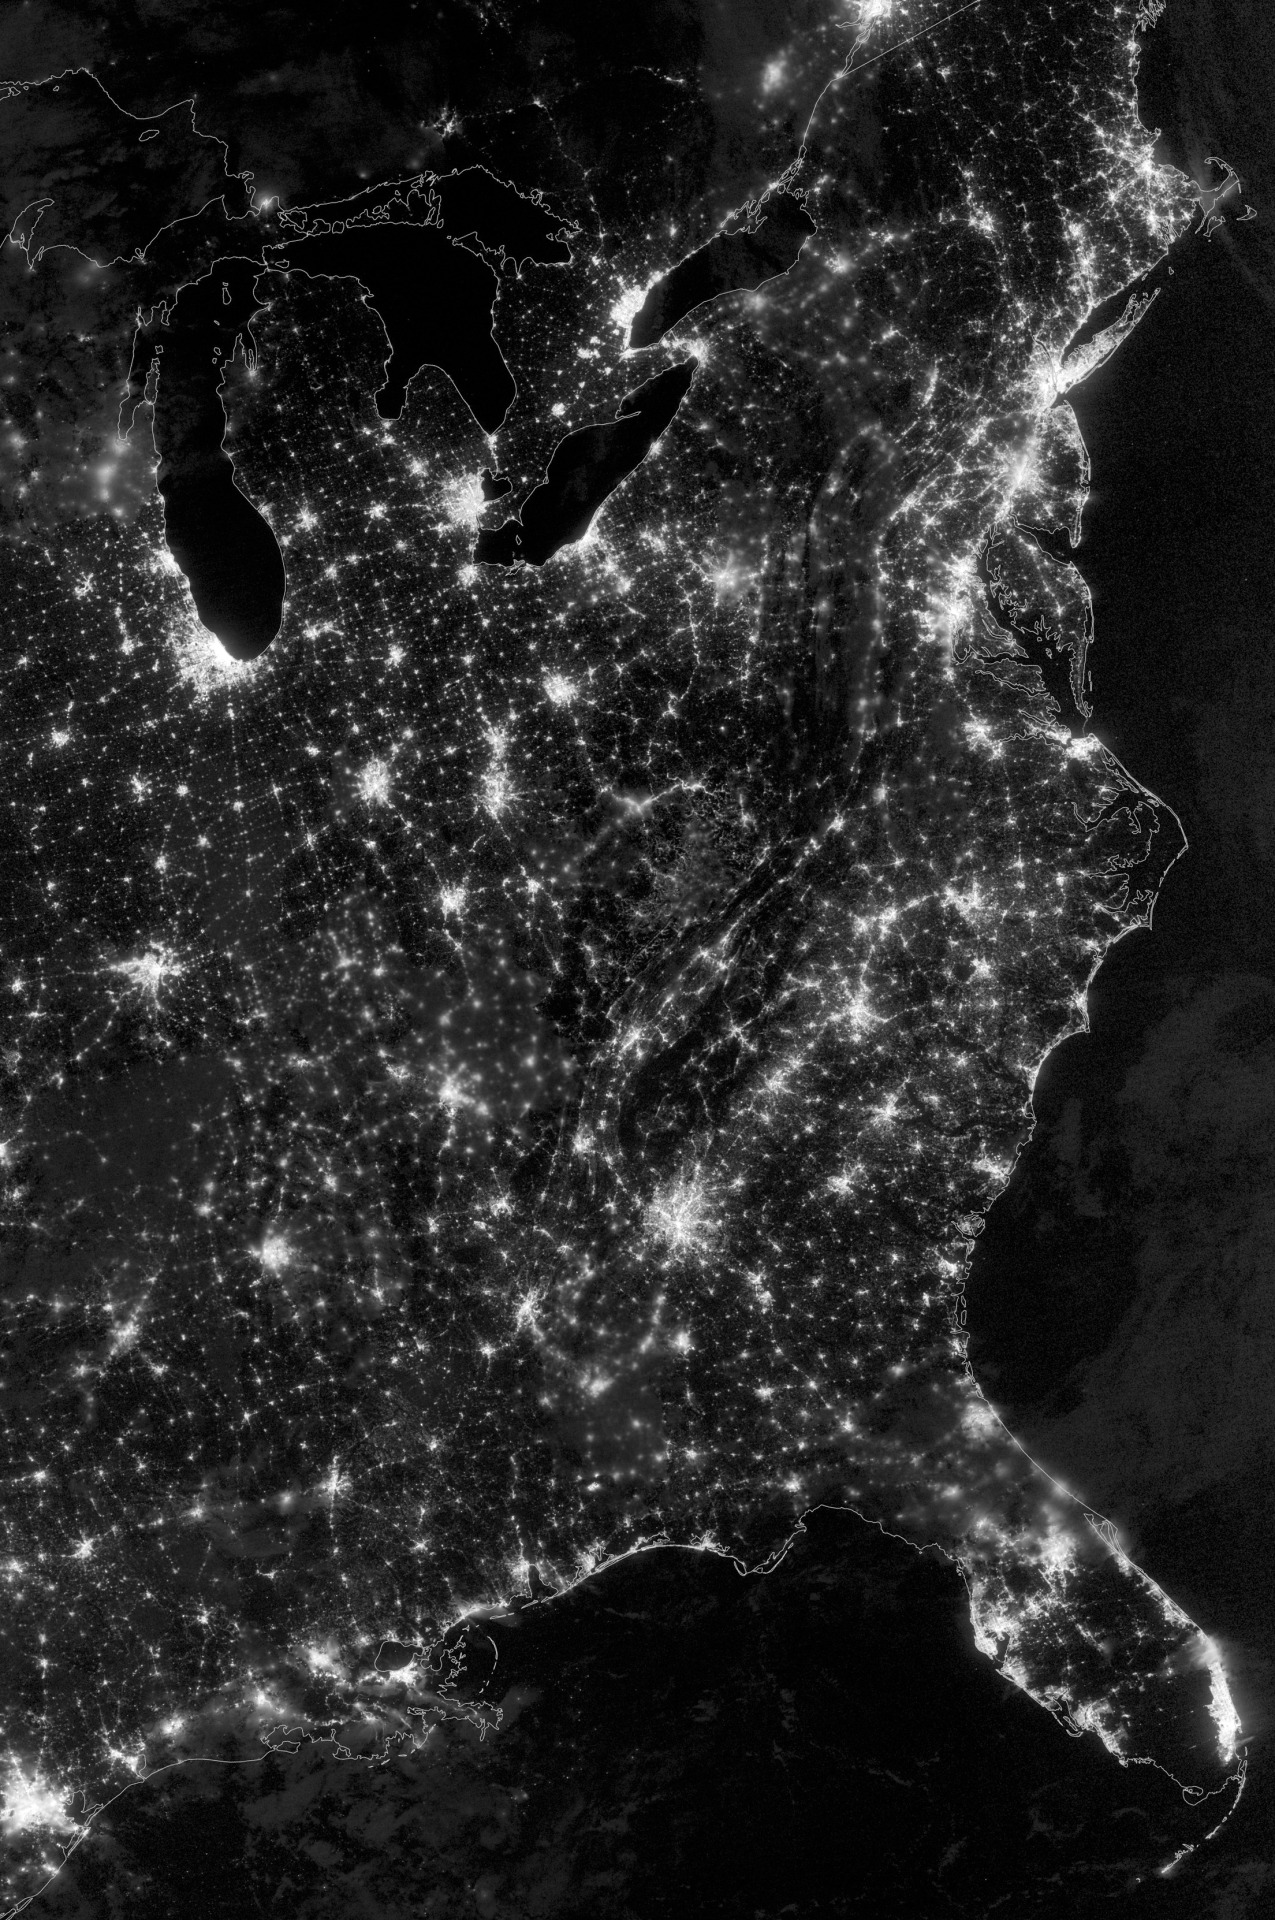 City lights of the Eastern United States, imaged by Suomi NPP on October 1st, 2013. High Resolution (7500x5000)